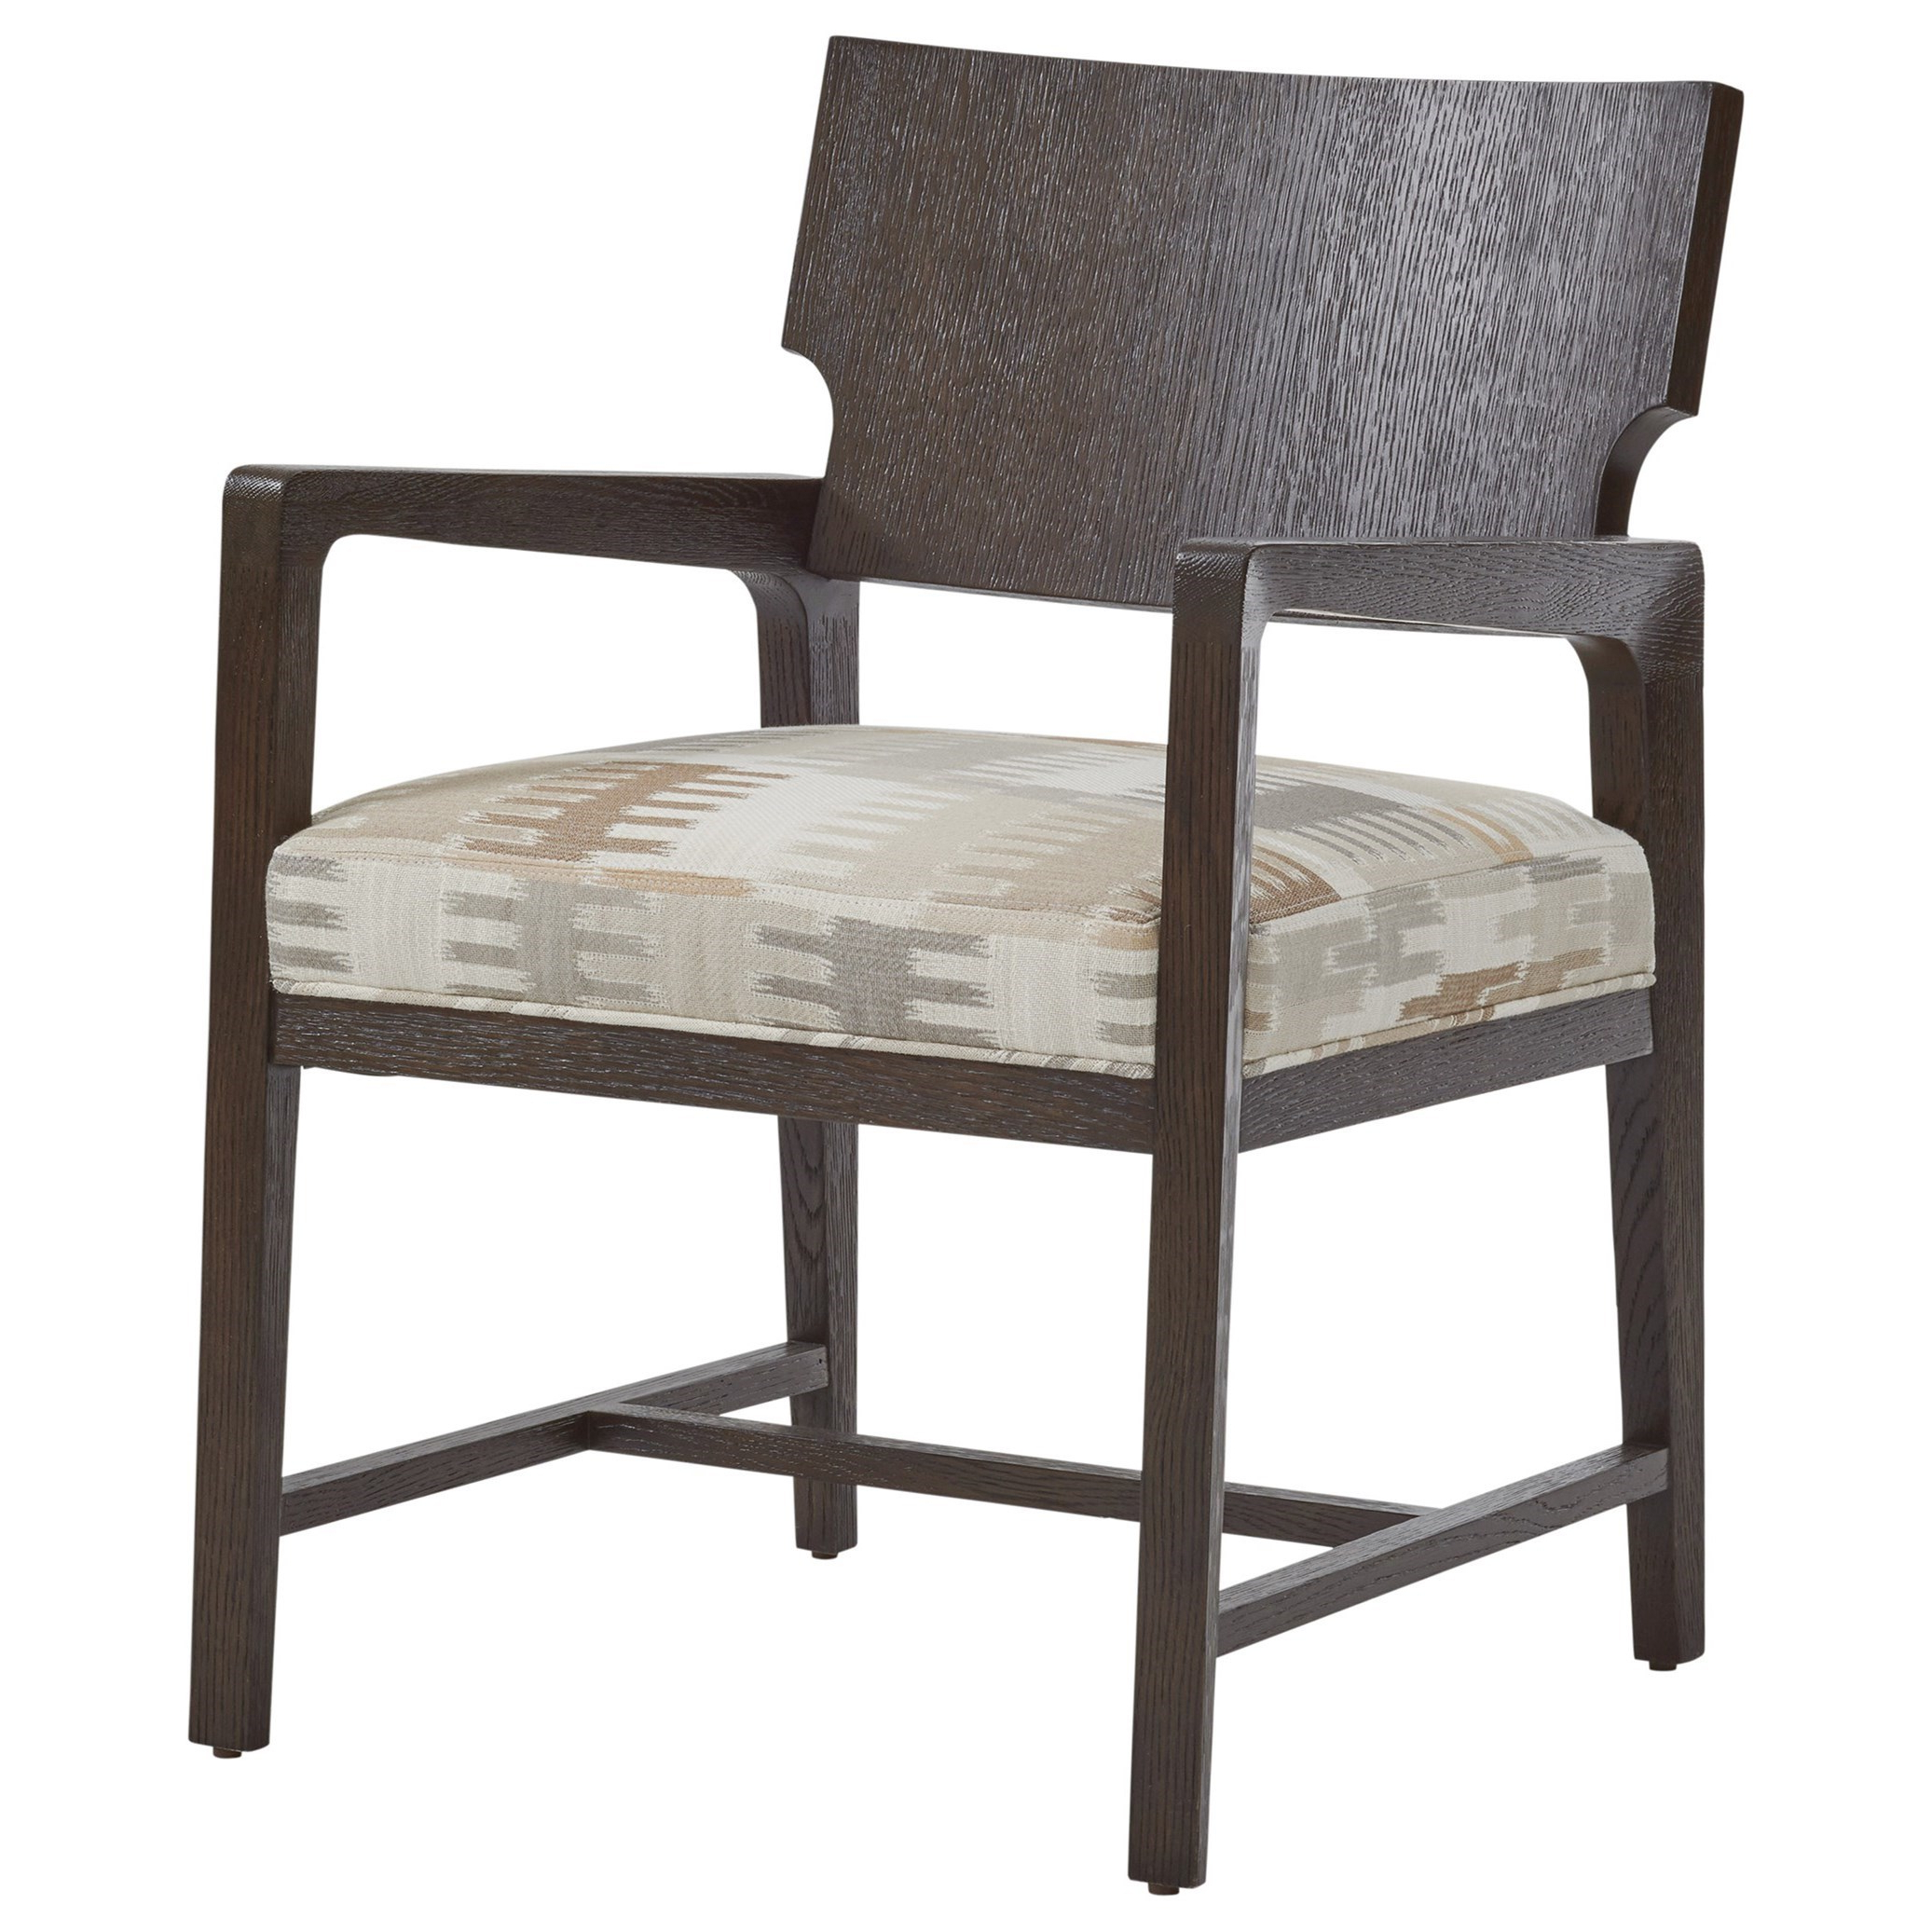 Barclay Butera Park City 930 881 Highland Customizable Pertaining To Most Up To Date Deer Trail Armchairs (View 11 of 20)